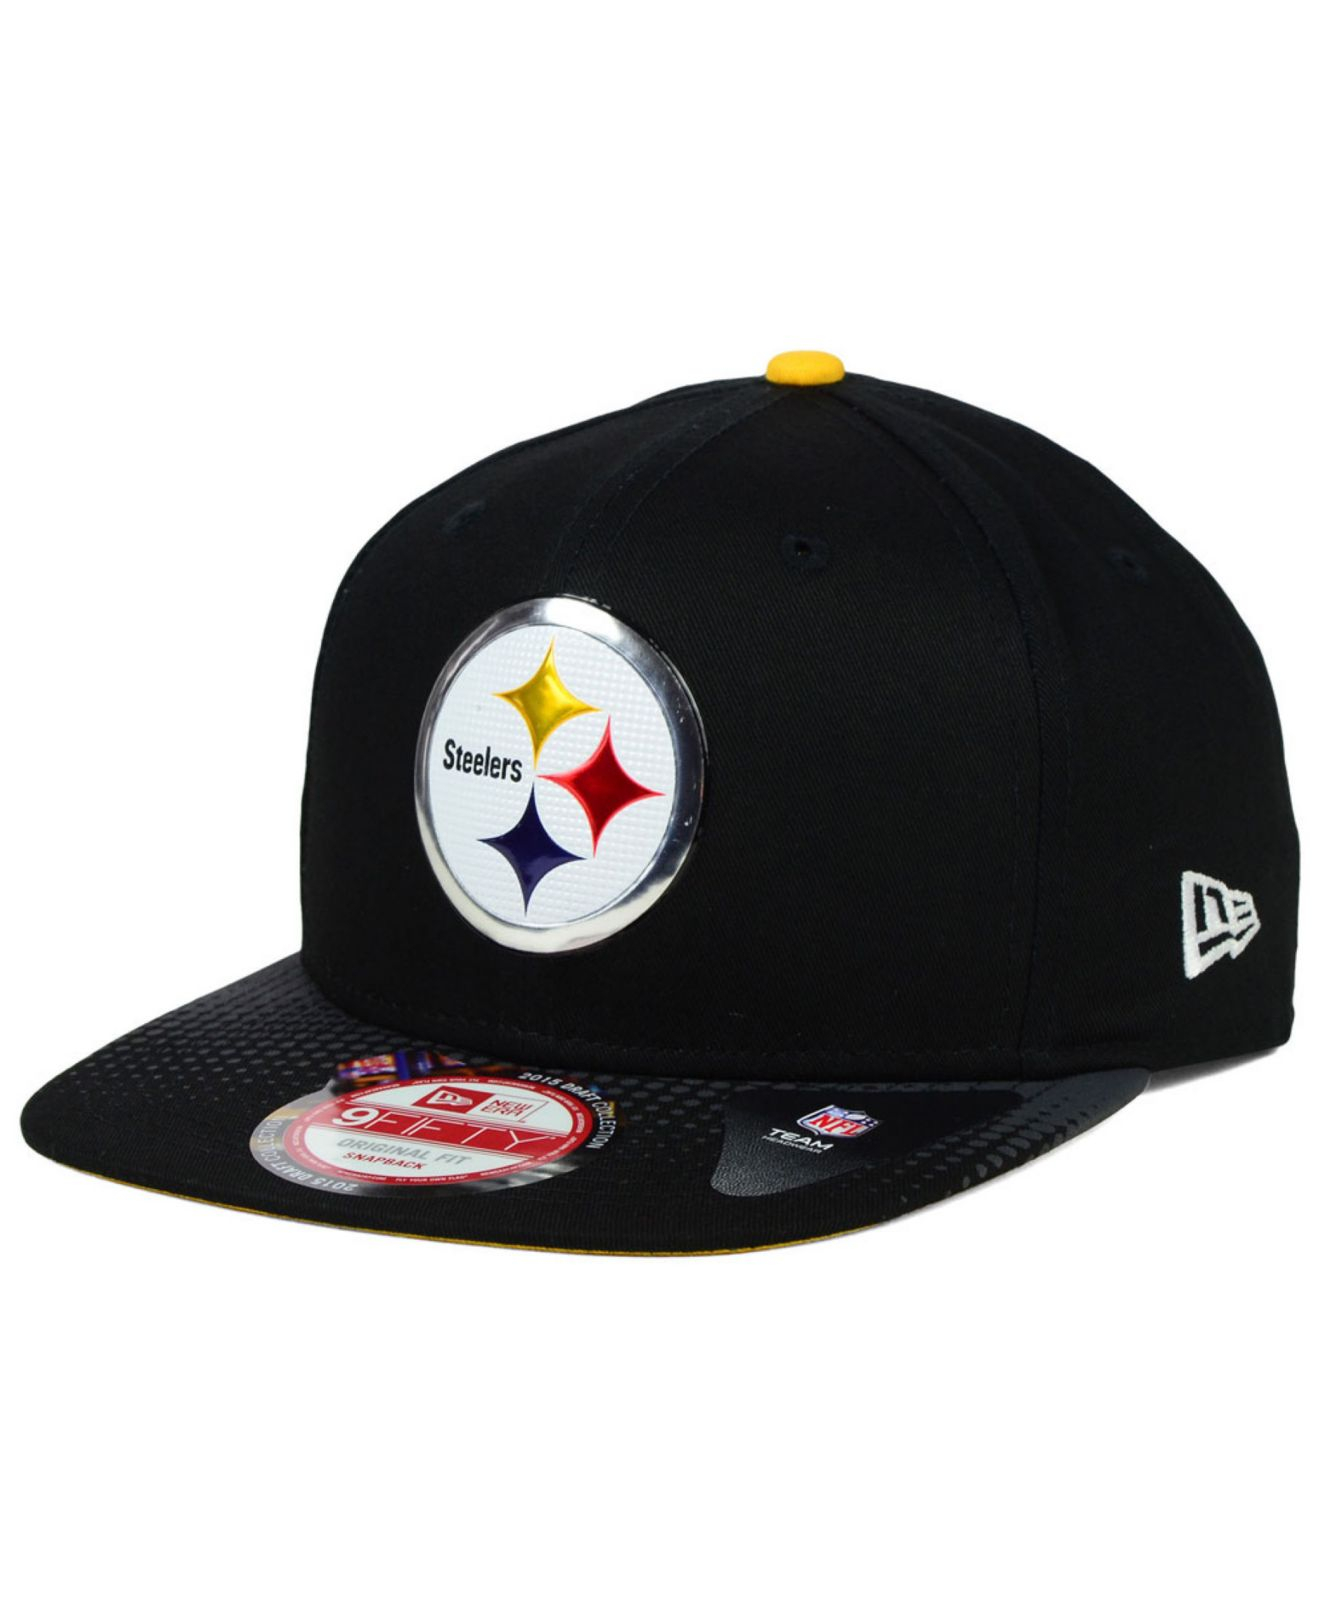 Lyst - Ktz Pittsburgh Steelers 2015 Nfl Draft 9fifty Snapback Cap in ... 616669bc6